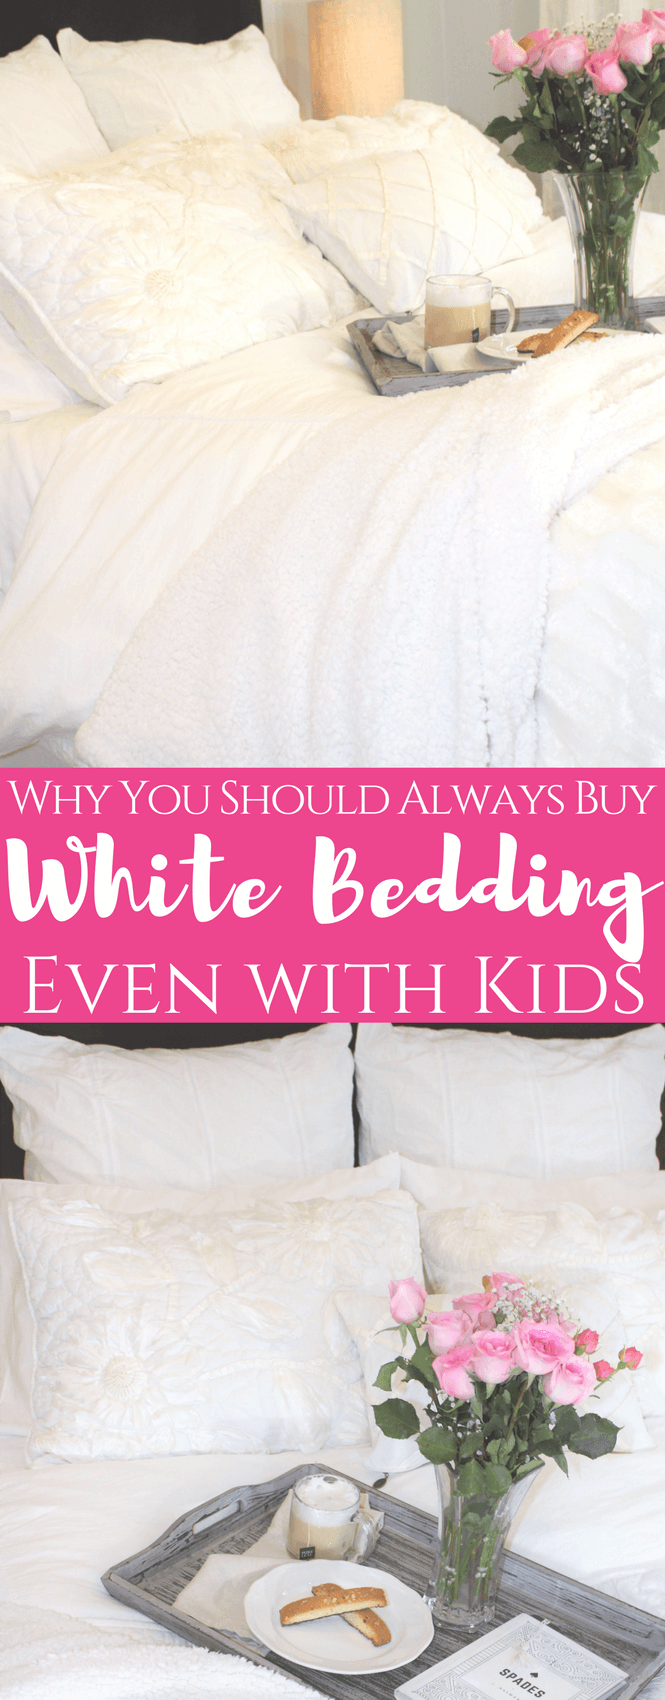 Why You Should Always Buy White Bedding {Even With Kids}